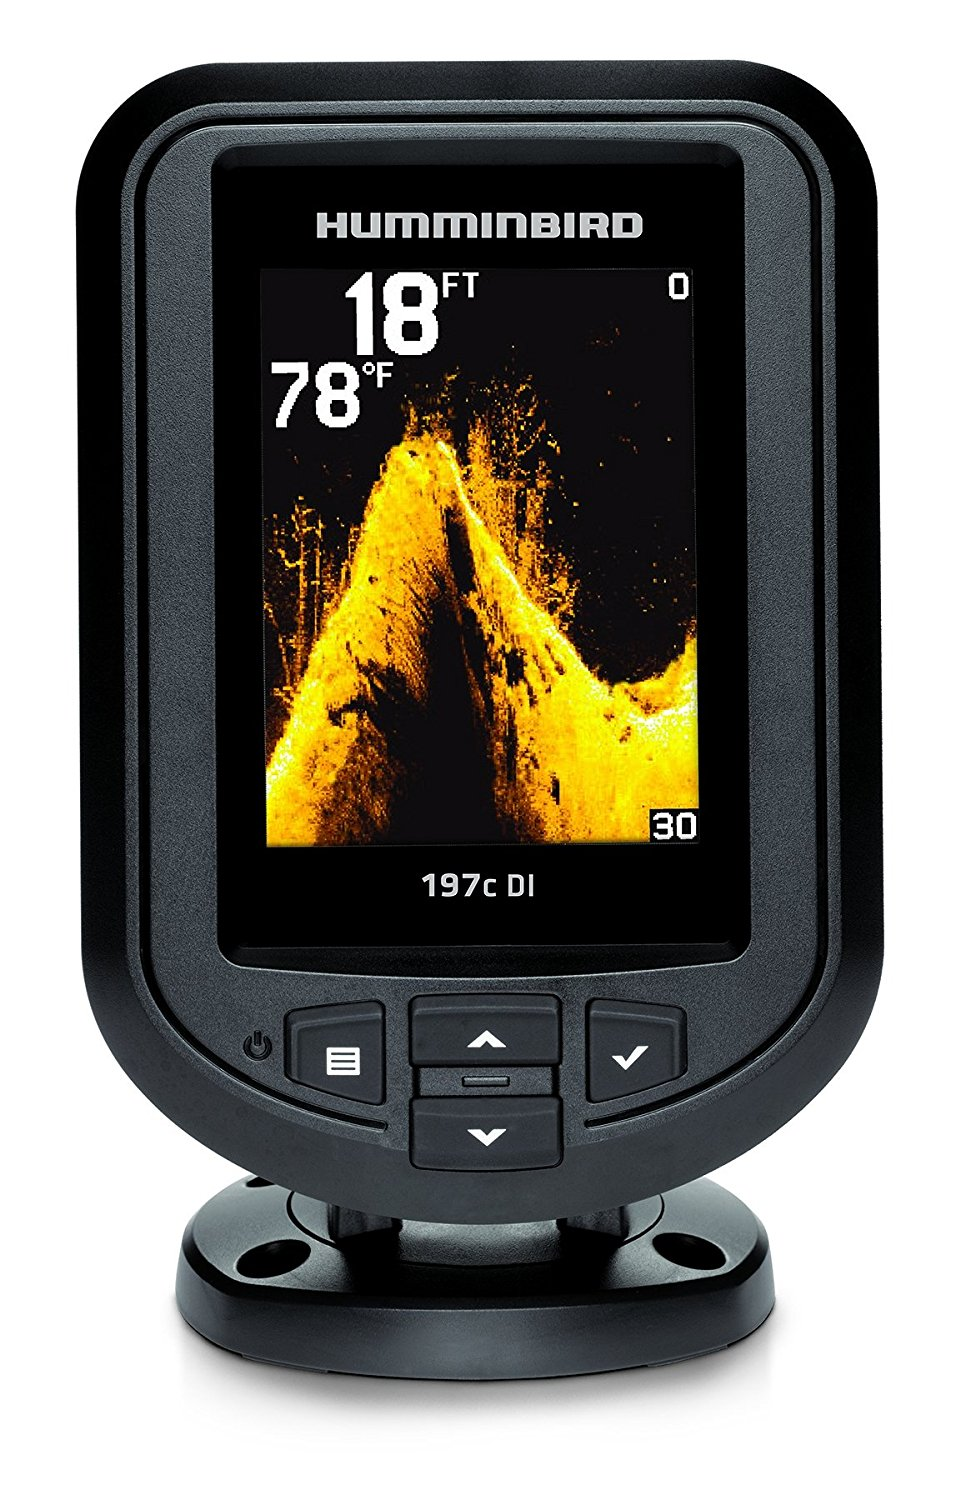 Humminbird 409690-1 PiranhaMax 197C DI Color Fish Finder with Down Imaging (Grey)